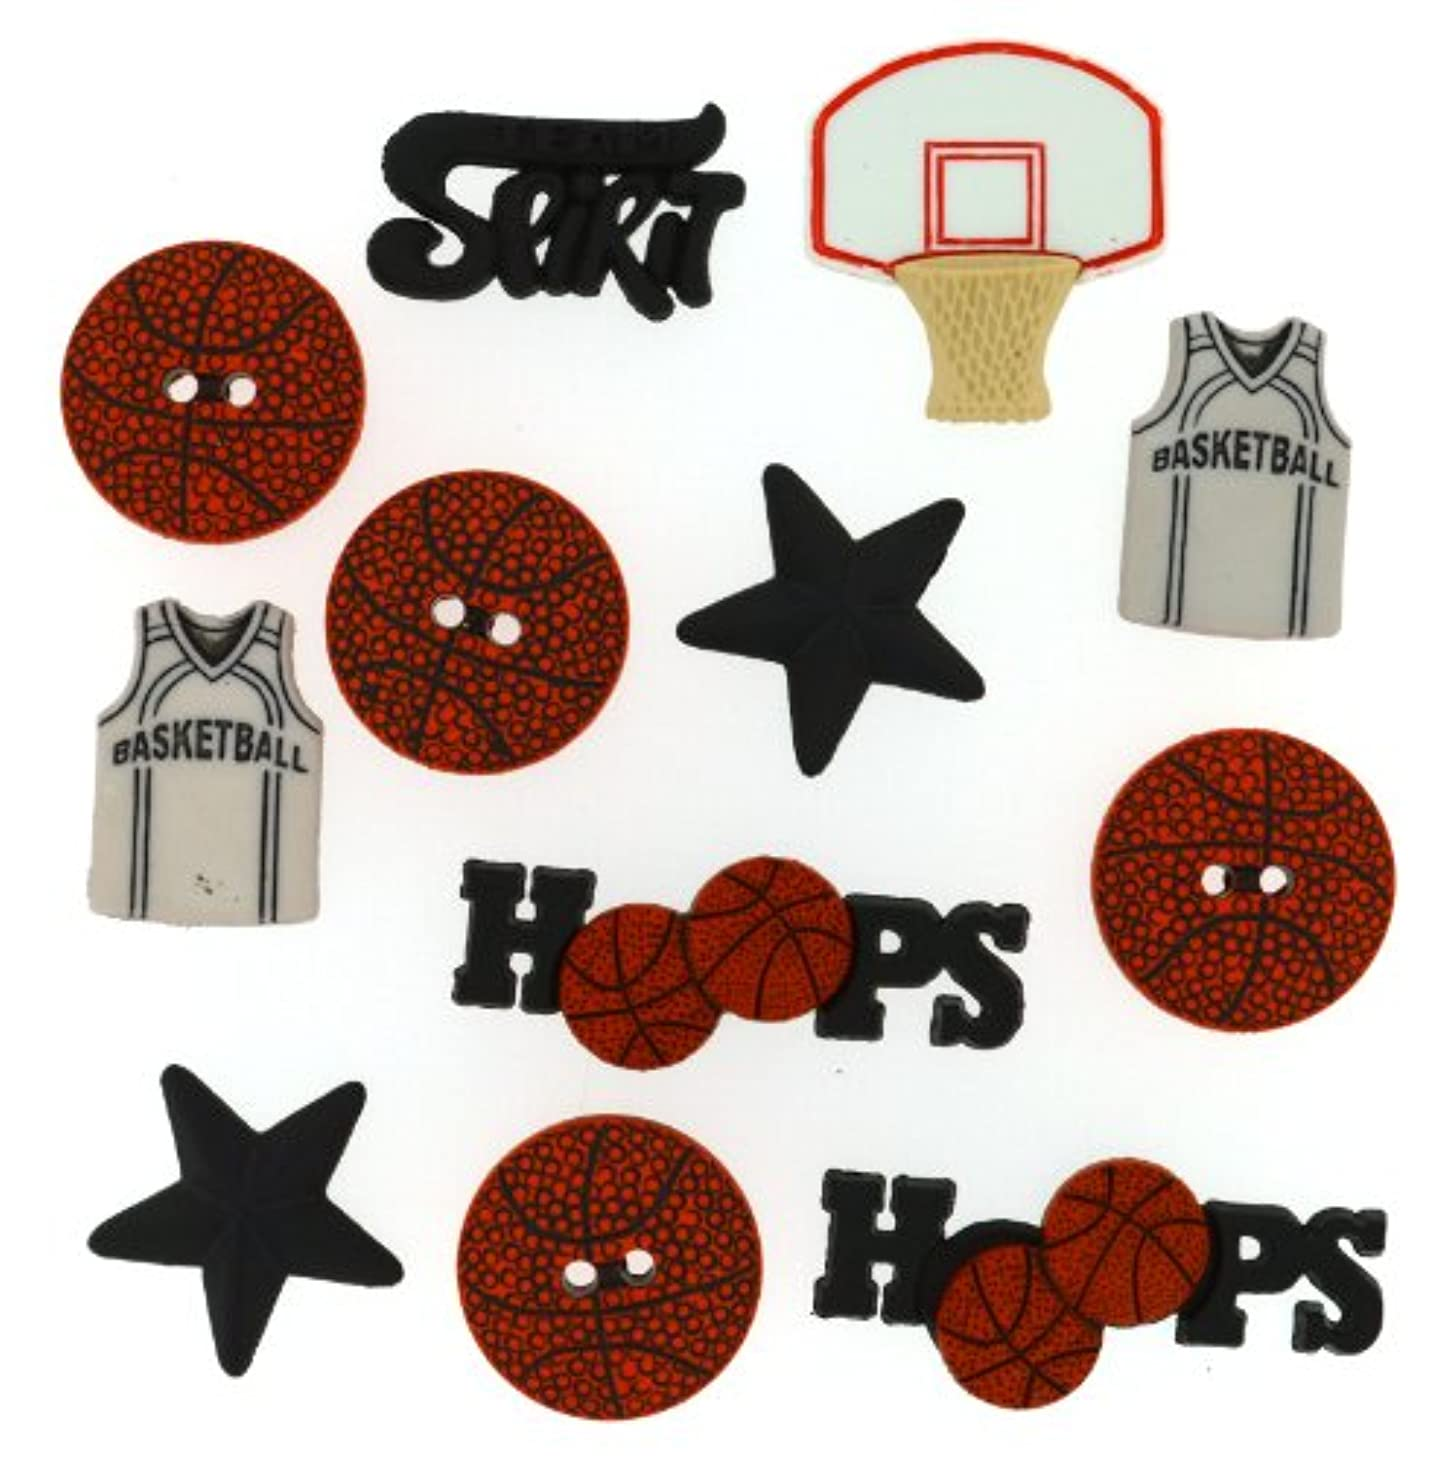 Dress It Up 421 Basketball Embellishment for Crafts